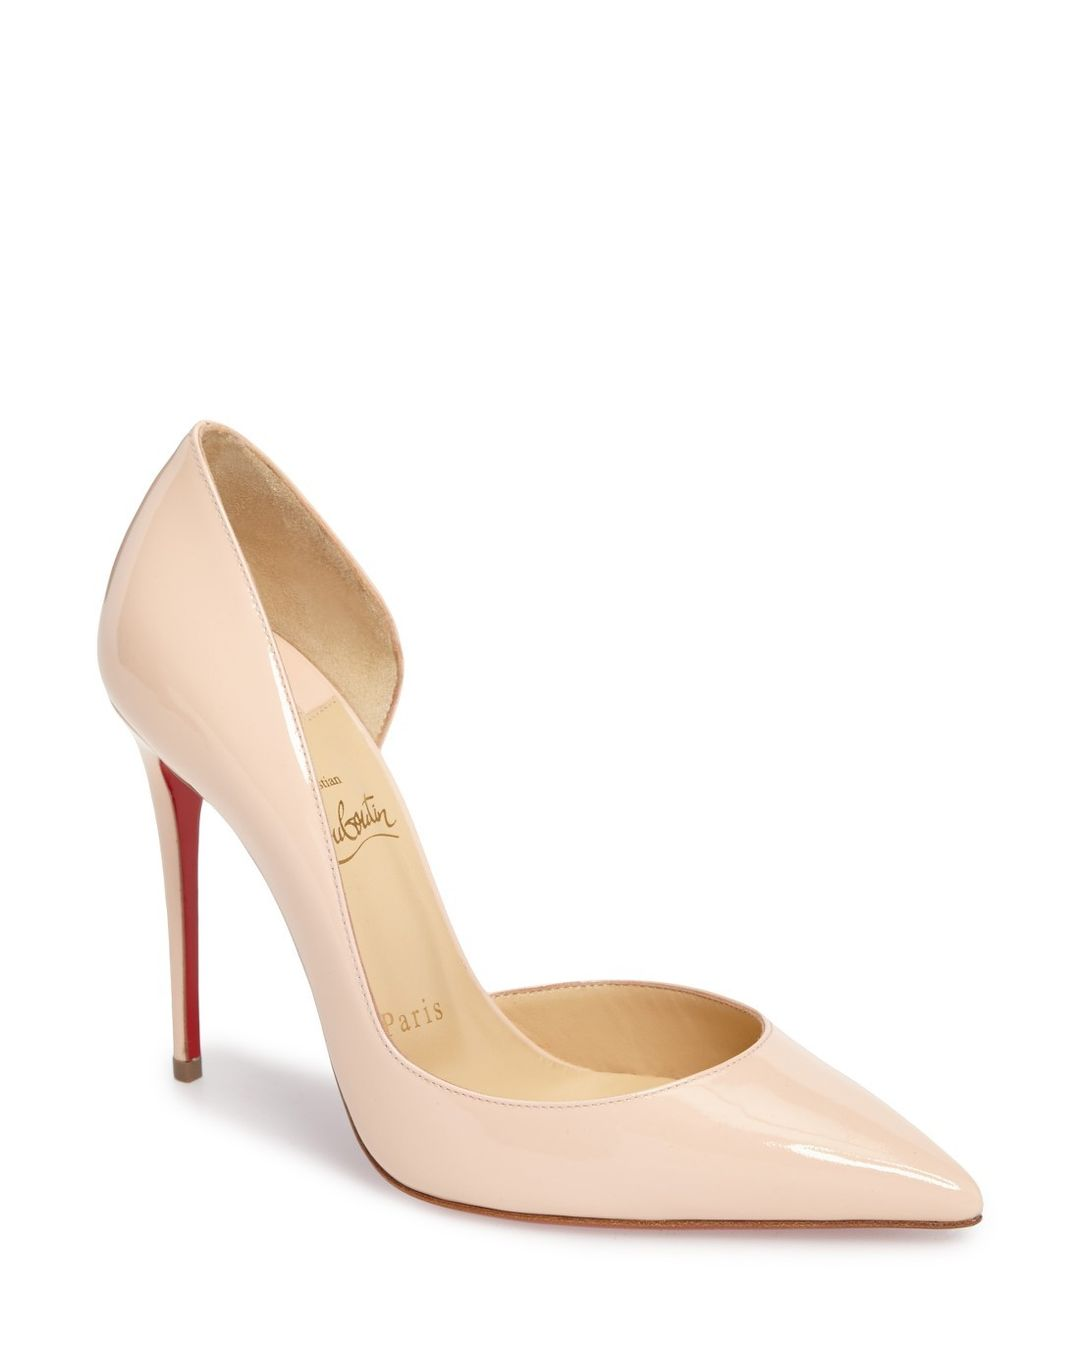 67667f7ef1b Christian Louboutin Iriza 100 Reviews and Sizing